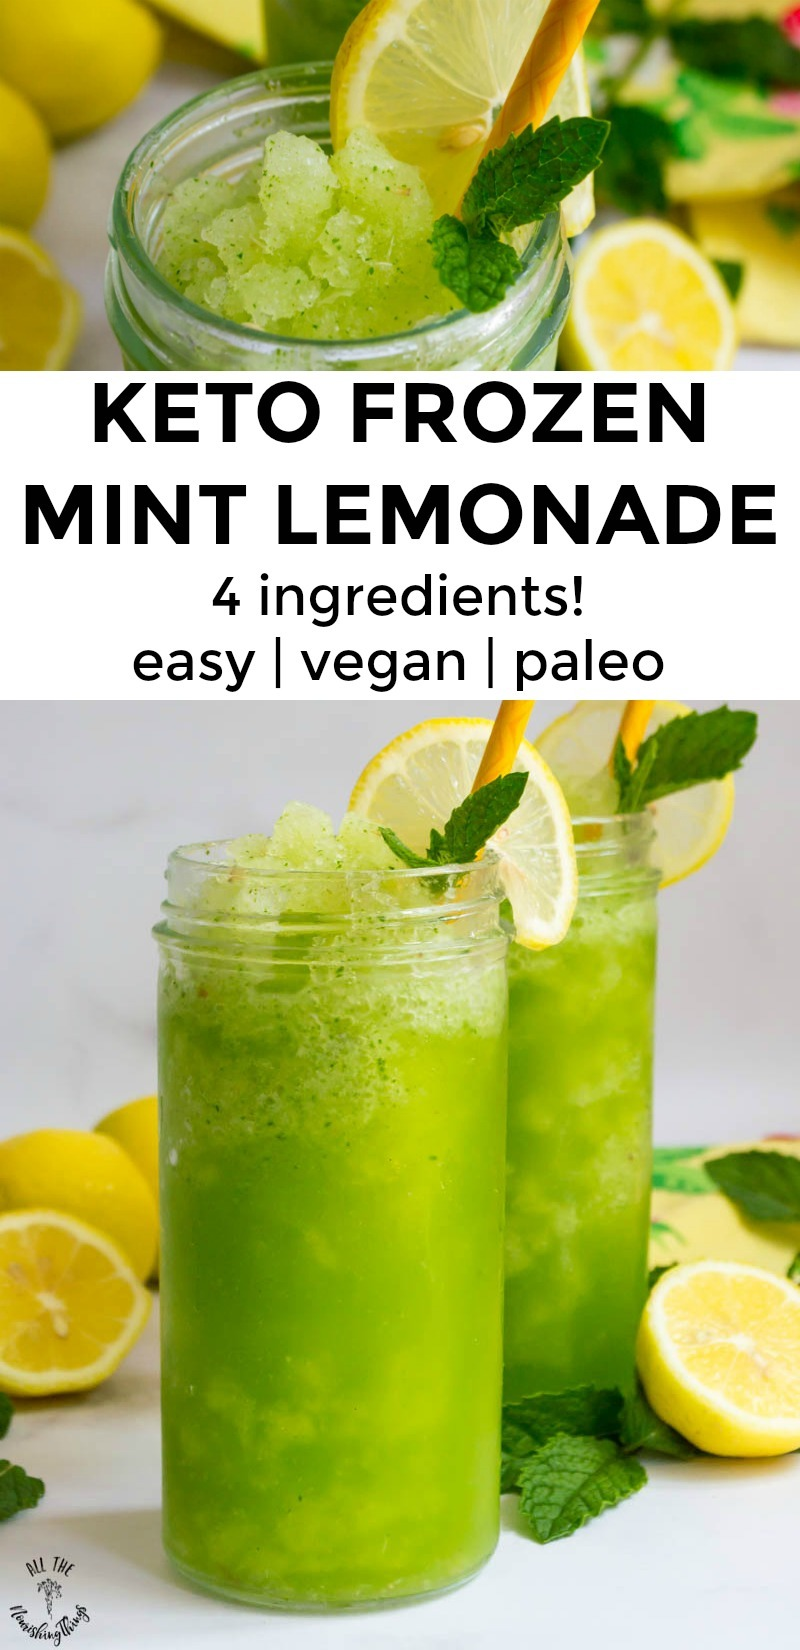 "close-up of keto frozen mint lemonade over a text overlay reading ""keto frozen mint lemonade"""